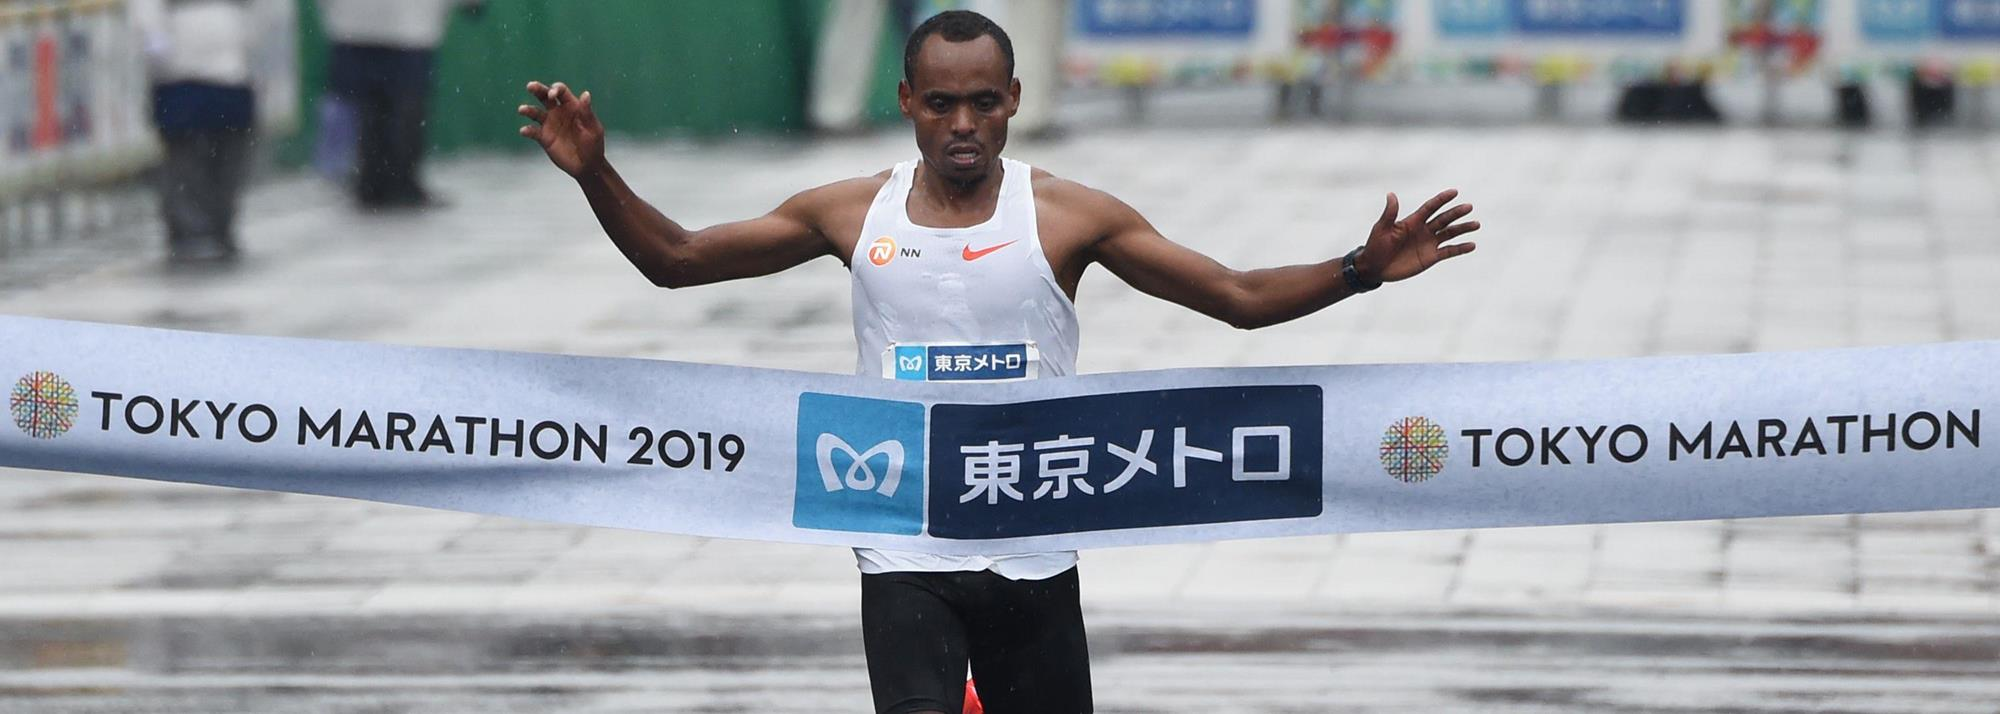 Defending champions Legese and Aga lead Tokyo Marathon elite fields